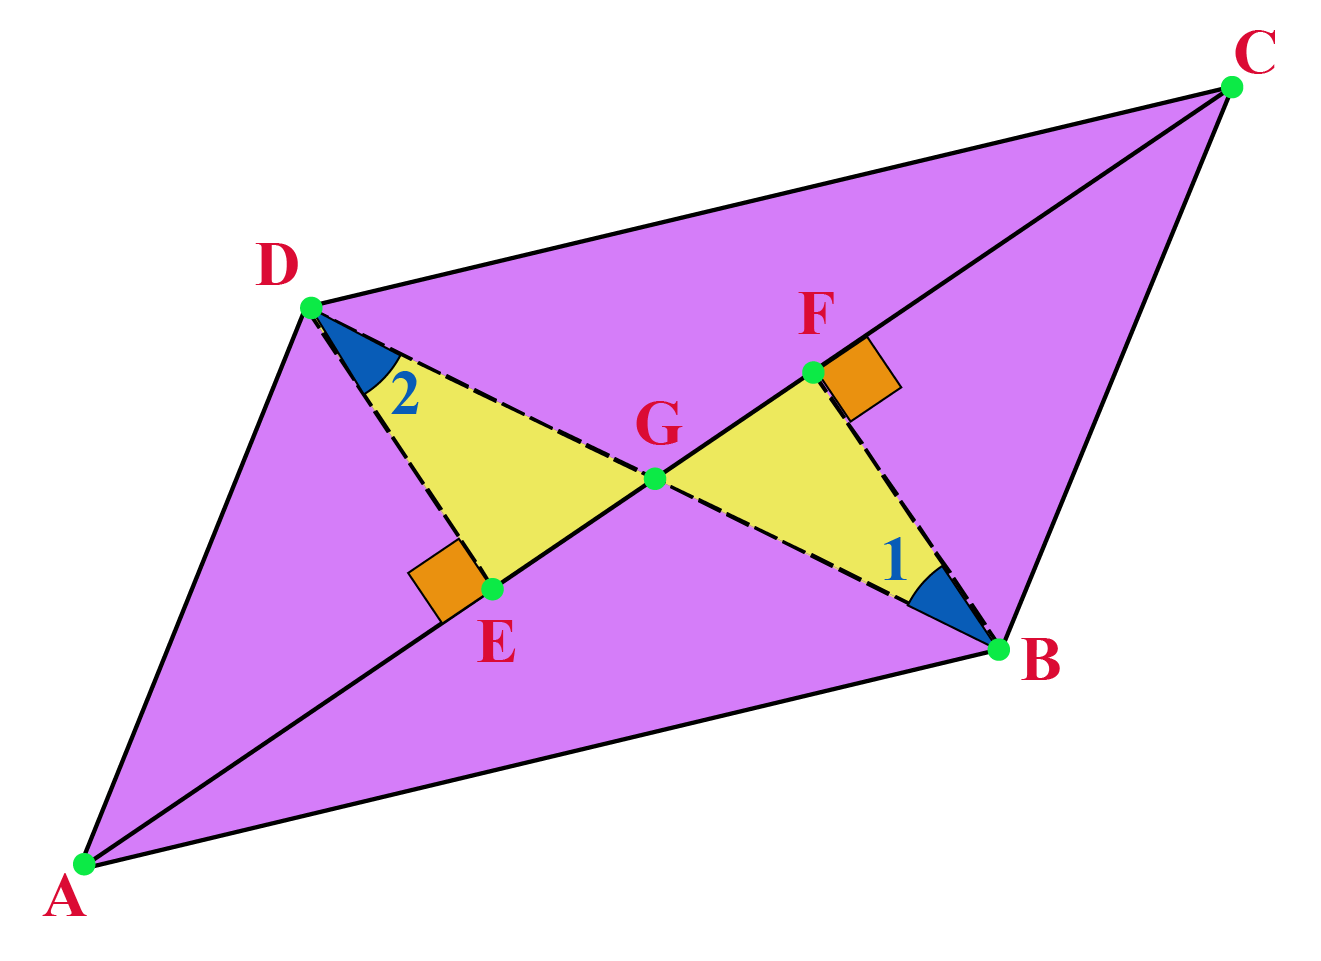 ABCD is a quadrilateral in which the diagonals bisect each other. B and D are equidistant from AC.